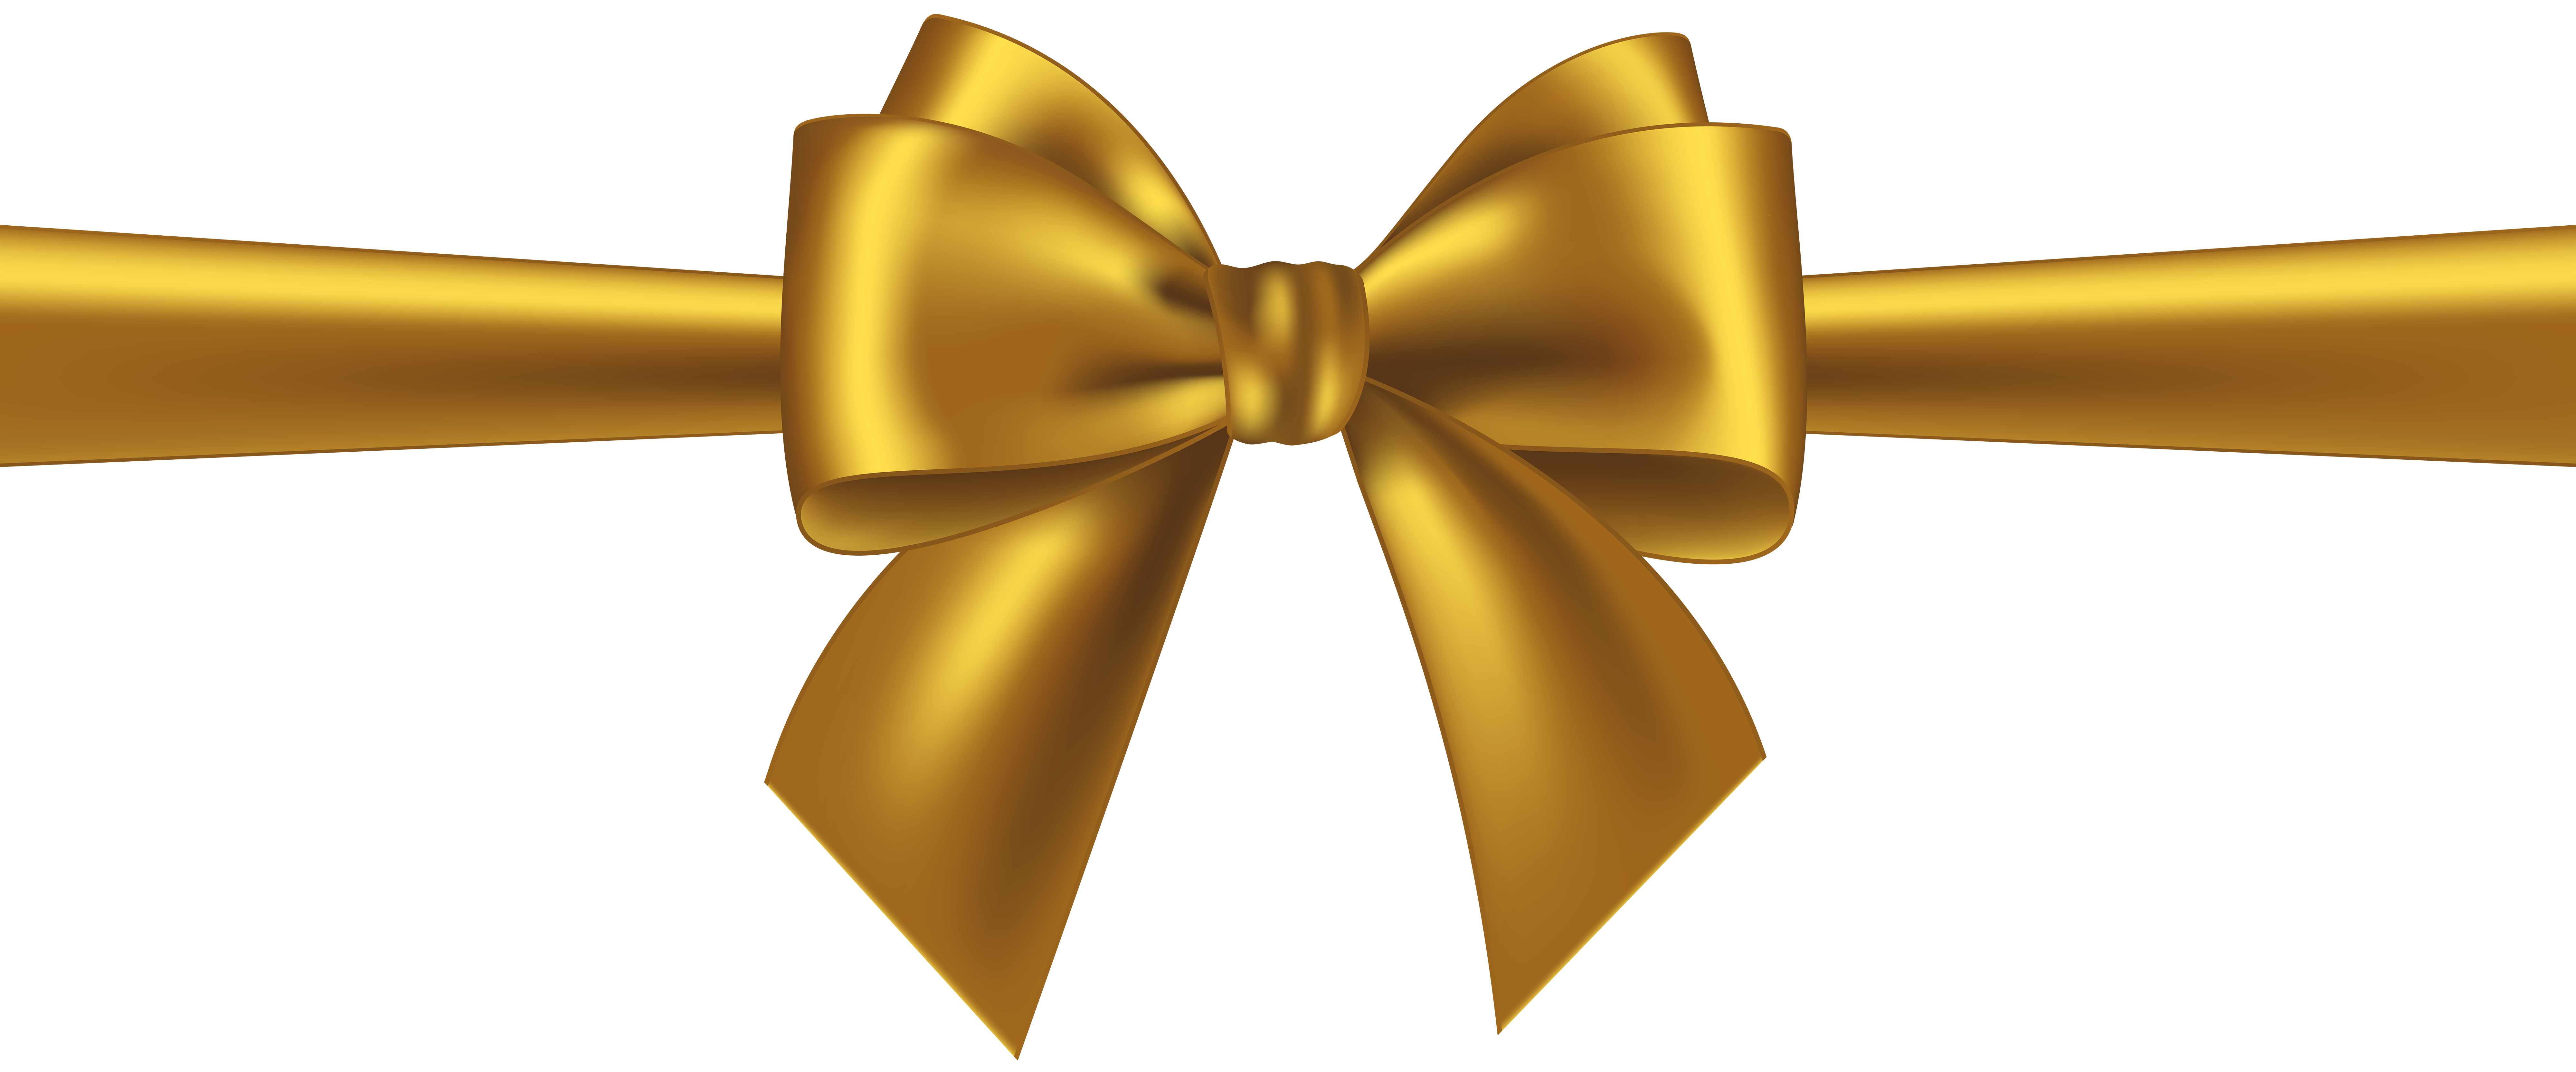 Clipart bow houndstooth. Gold transparent clip art